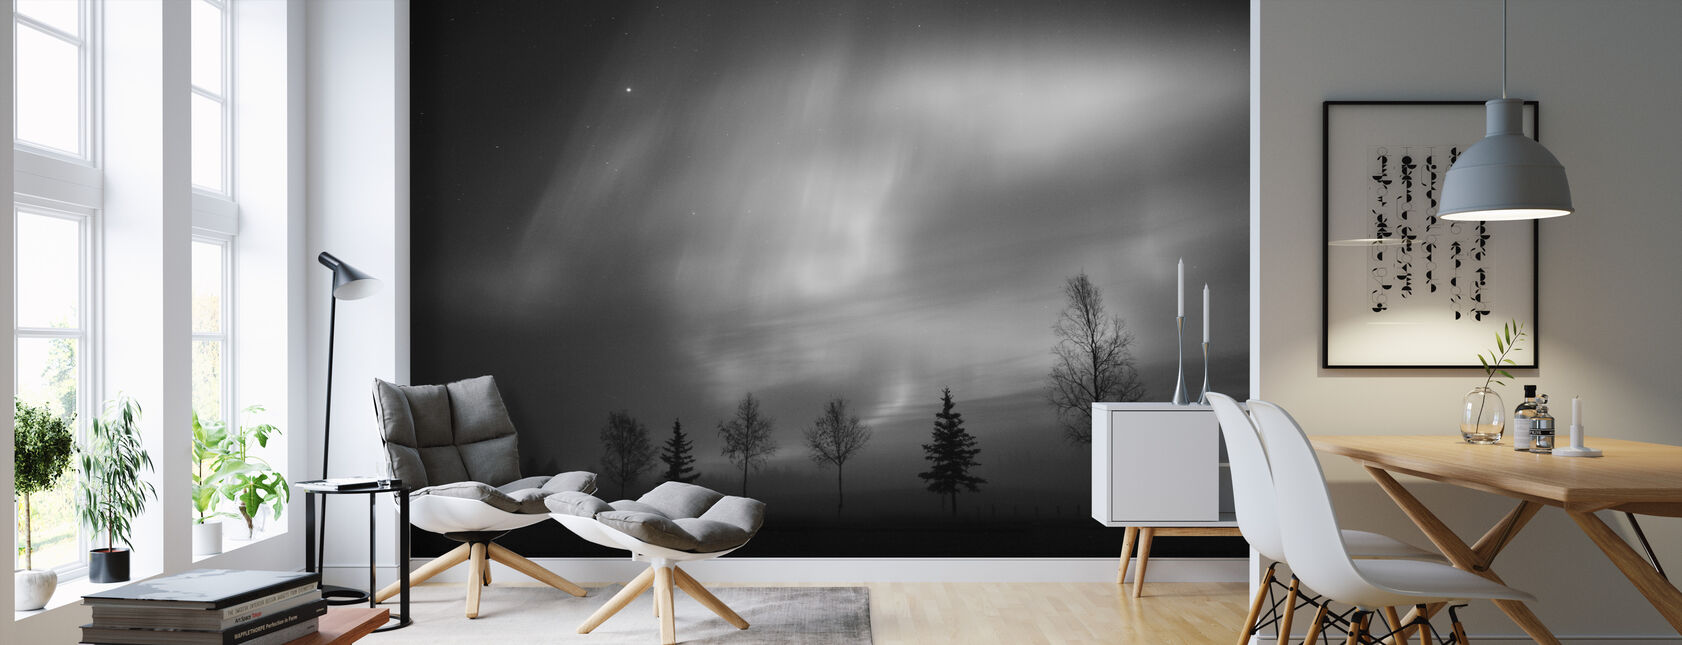 Nordic Lights - Wallpaper - Living Room